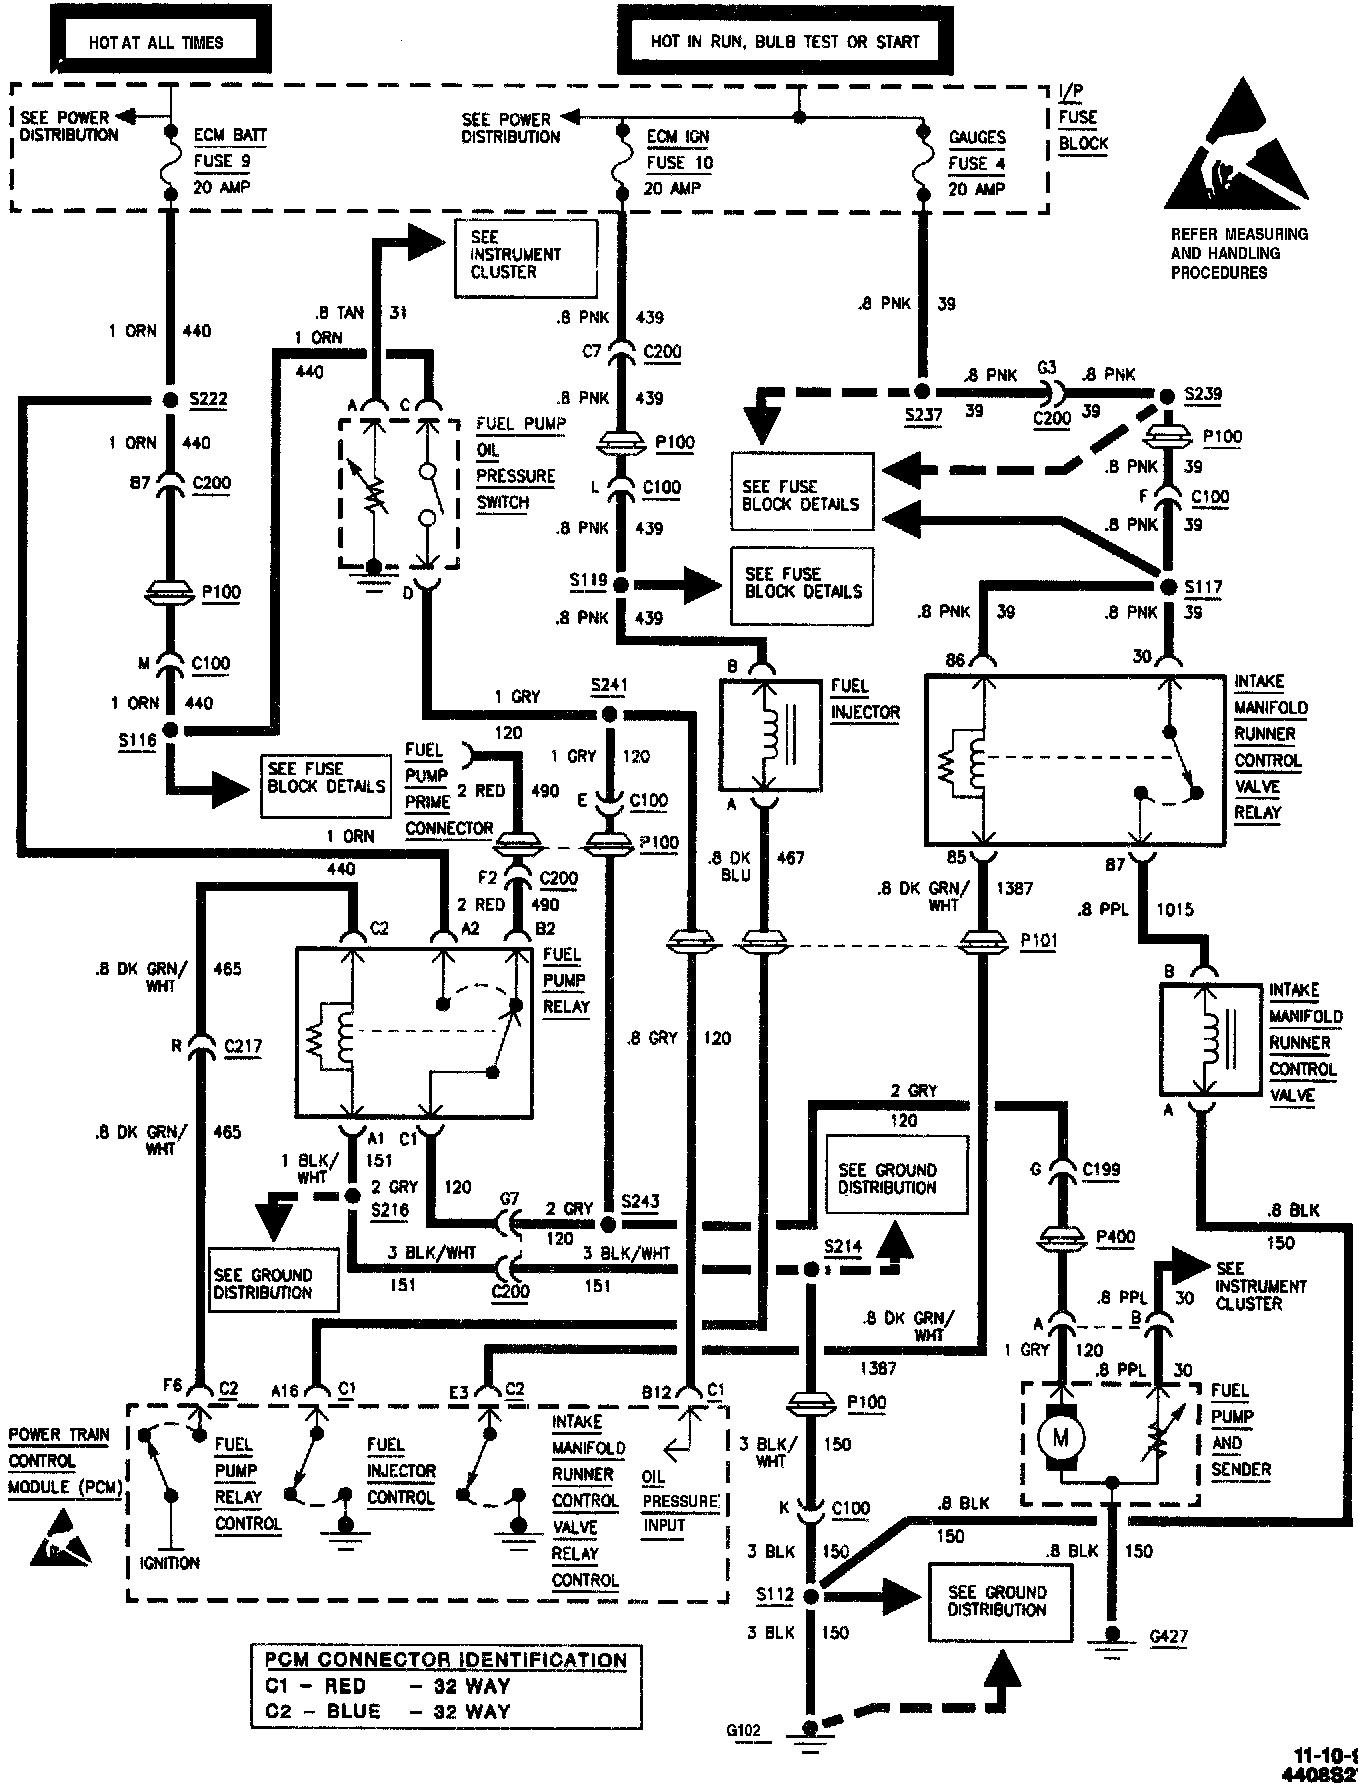 Mack Truck Electrical Schematics - Wiring Diagram Dash on 440 bracket diagram, 440 engine diagram, 440 alternator diagram, 440 plug diagram,